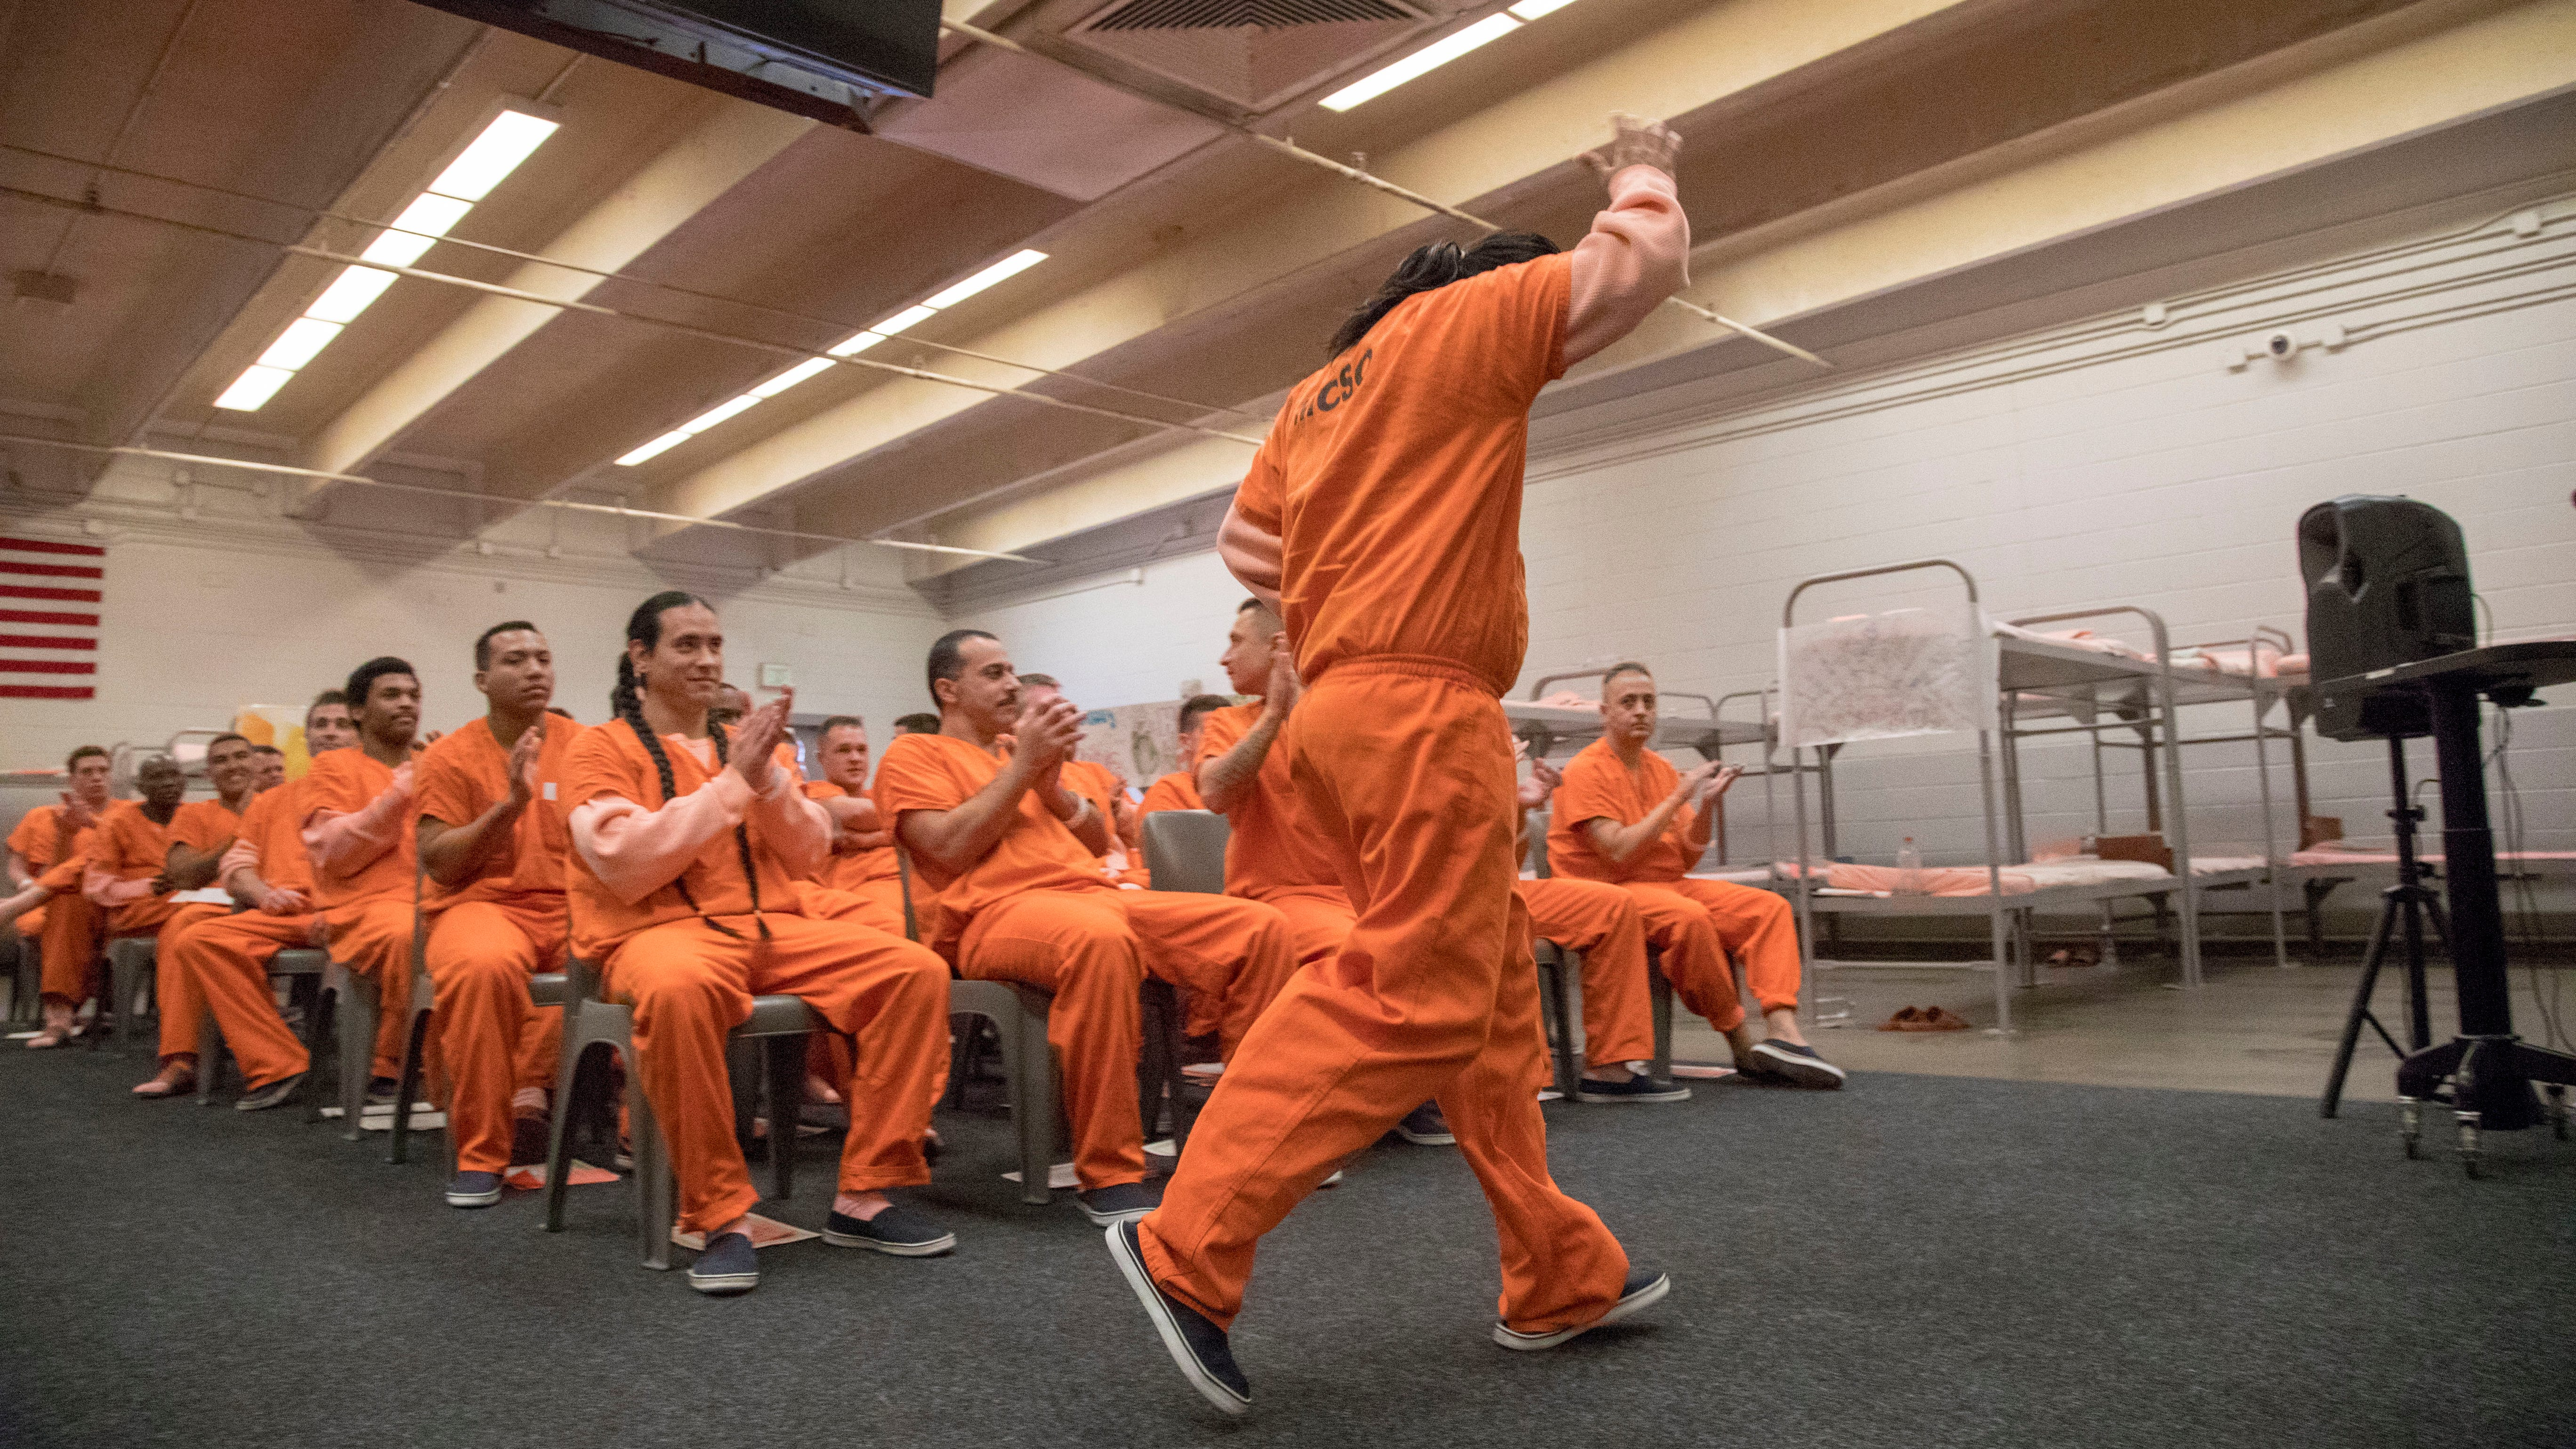 Life after lockup: Twists and turns for 2 ex-inmates addicted to drugs